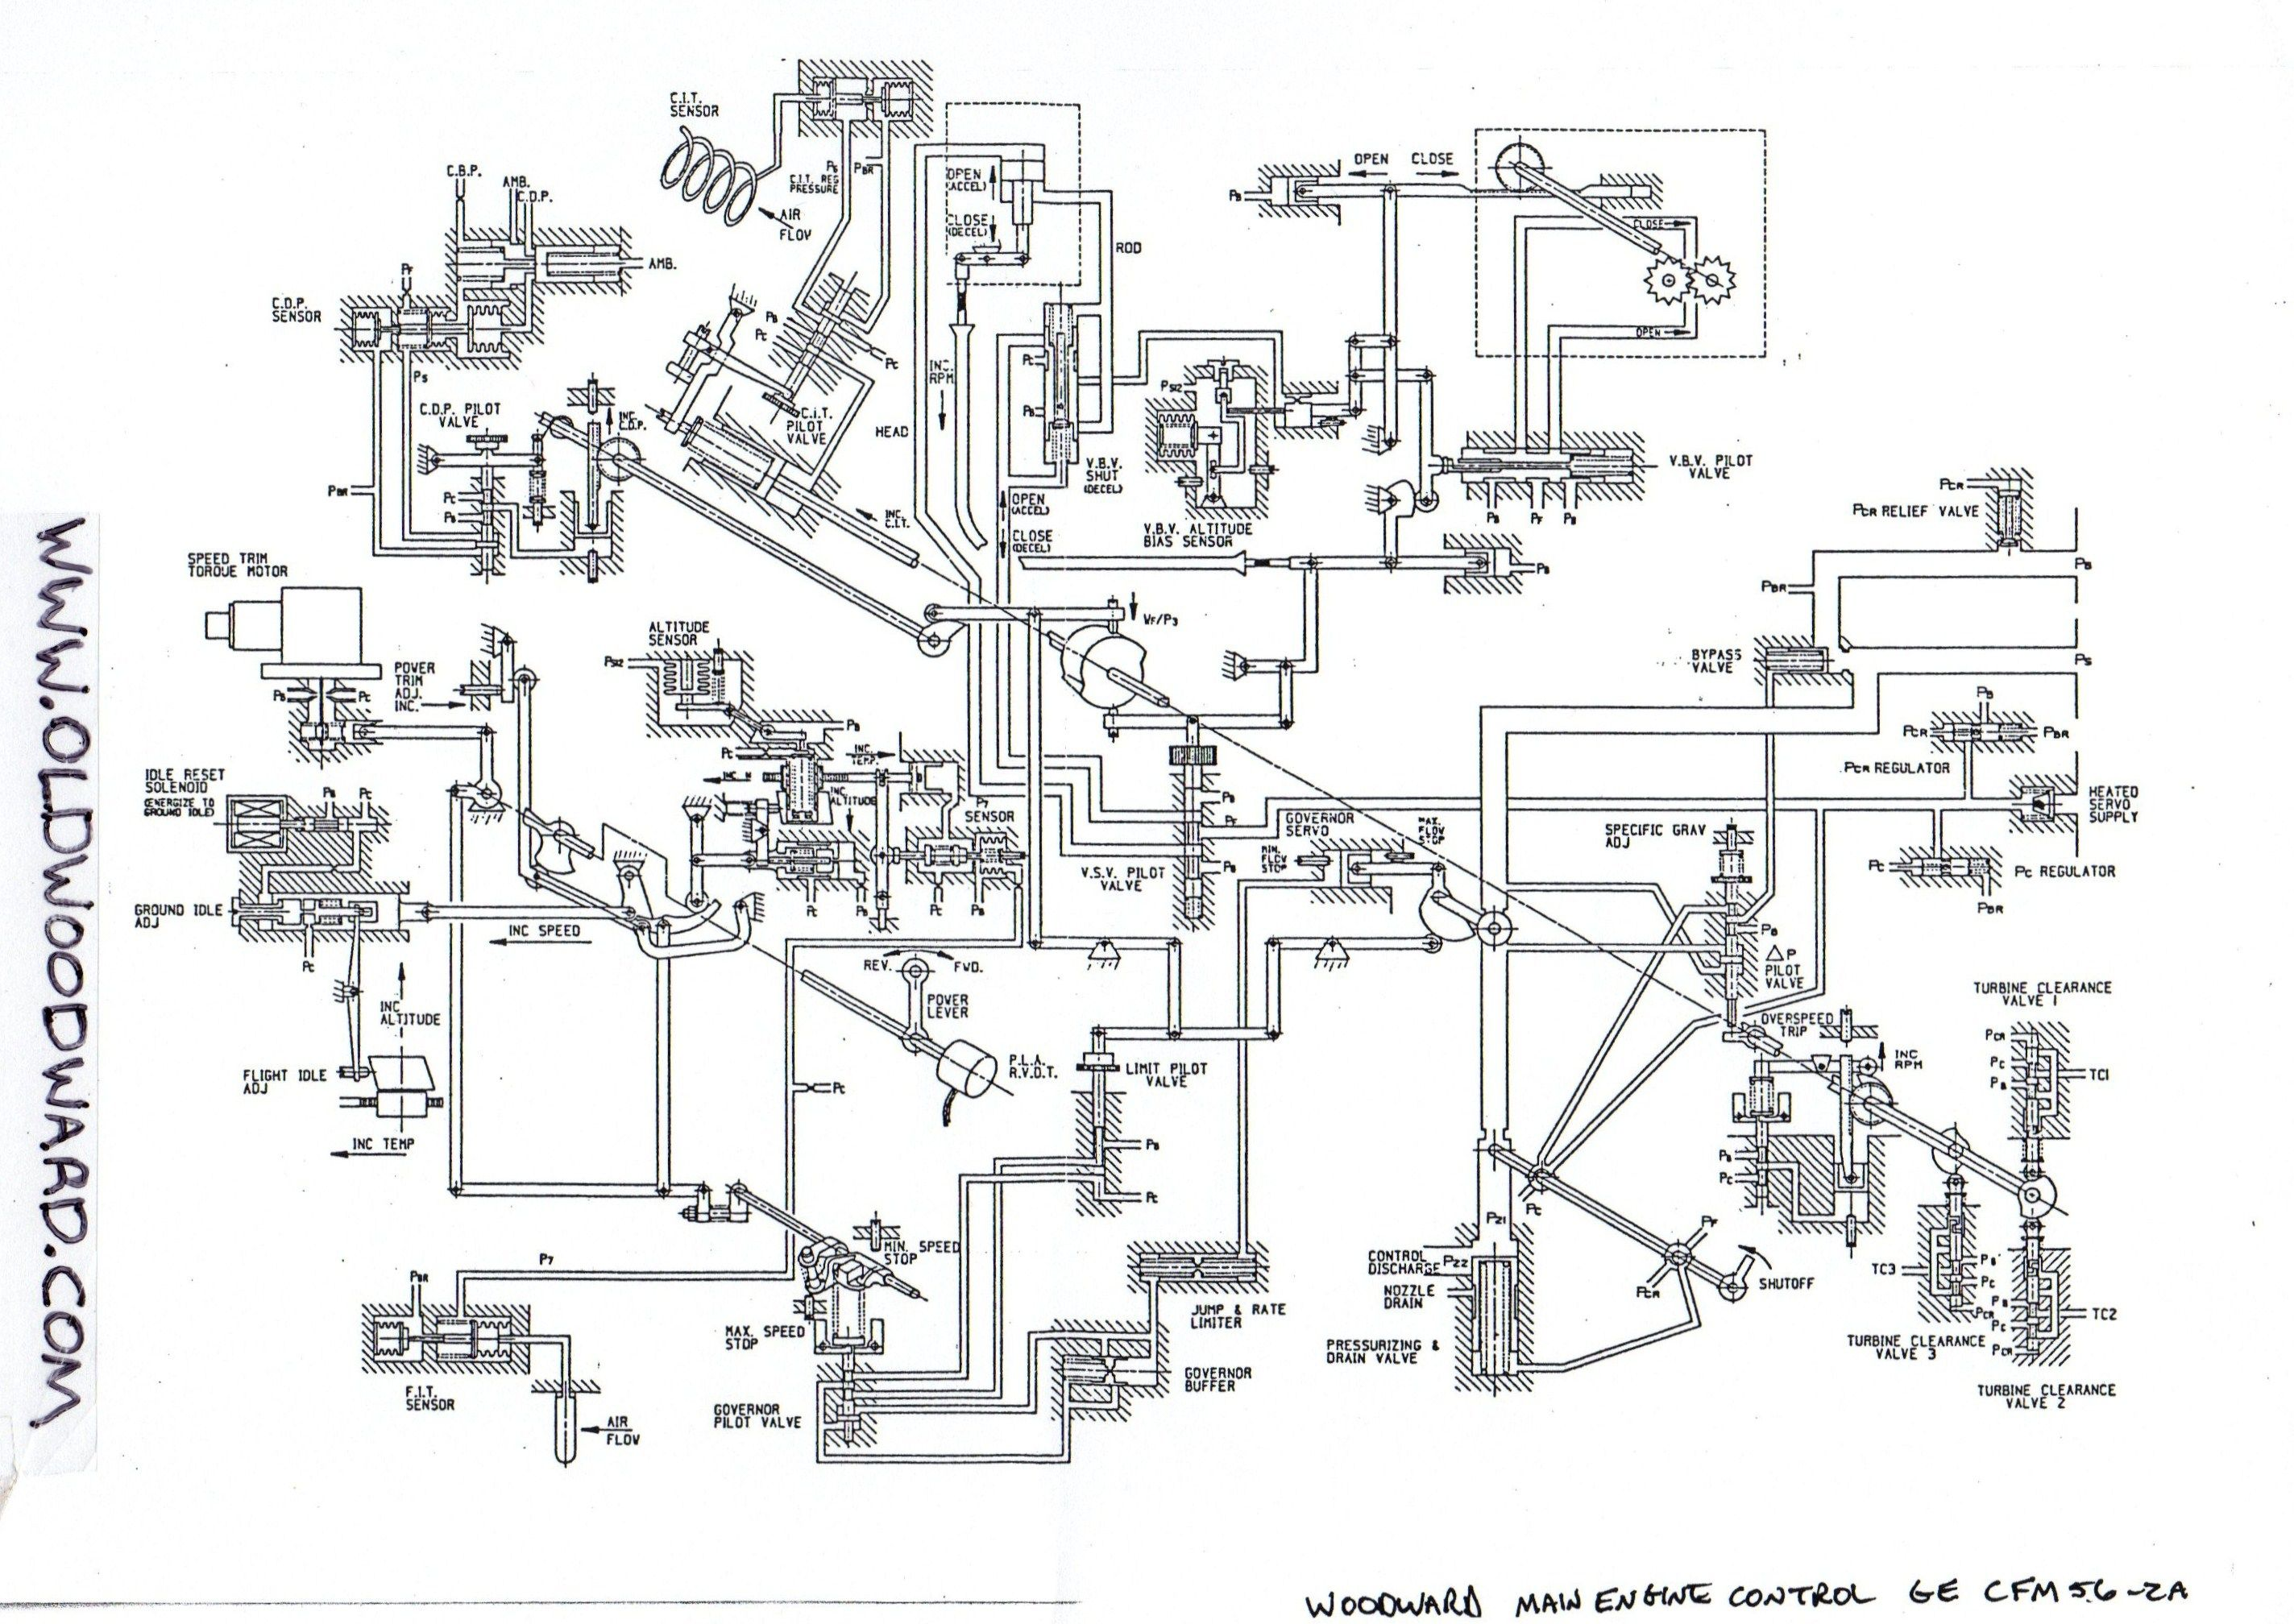 schematic drawing for the woodward gas turbine main engine control gas turbine jet engine schematic diagram [ 2847 x 2016 Pixel ]